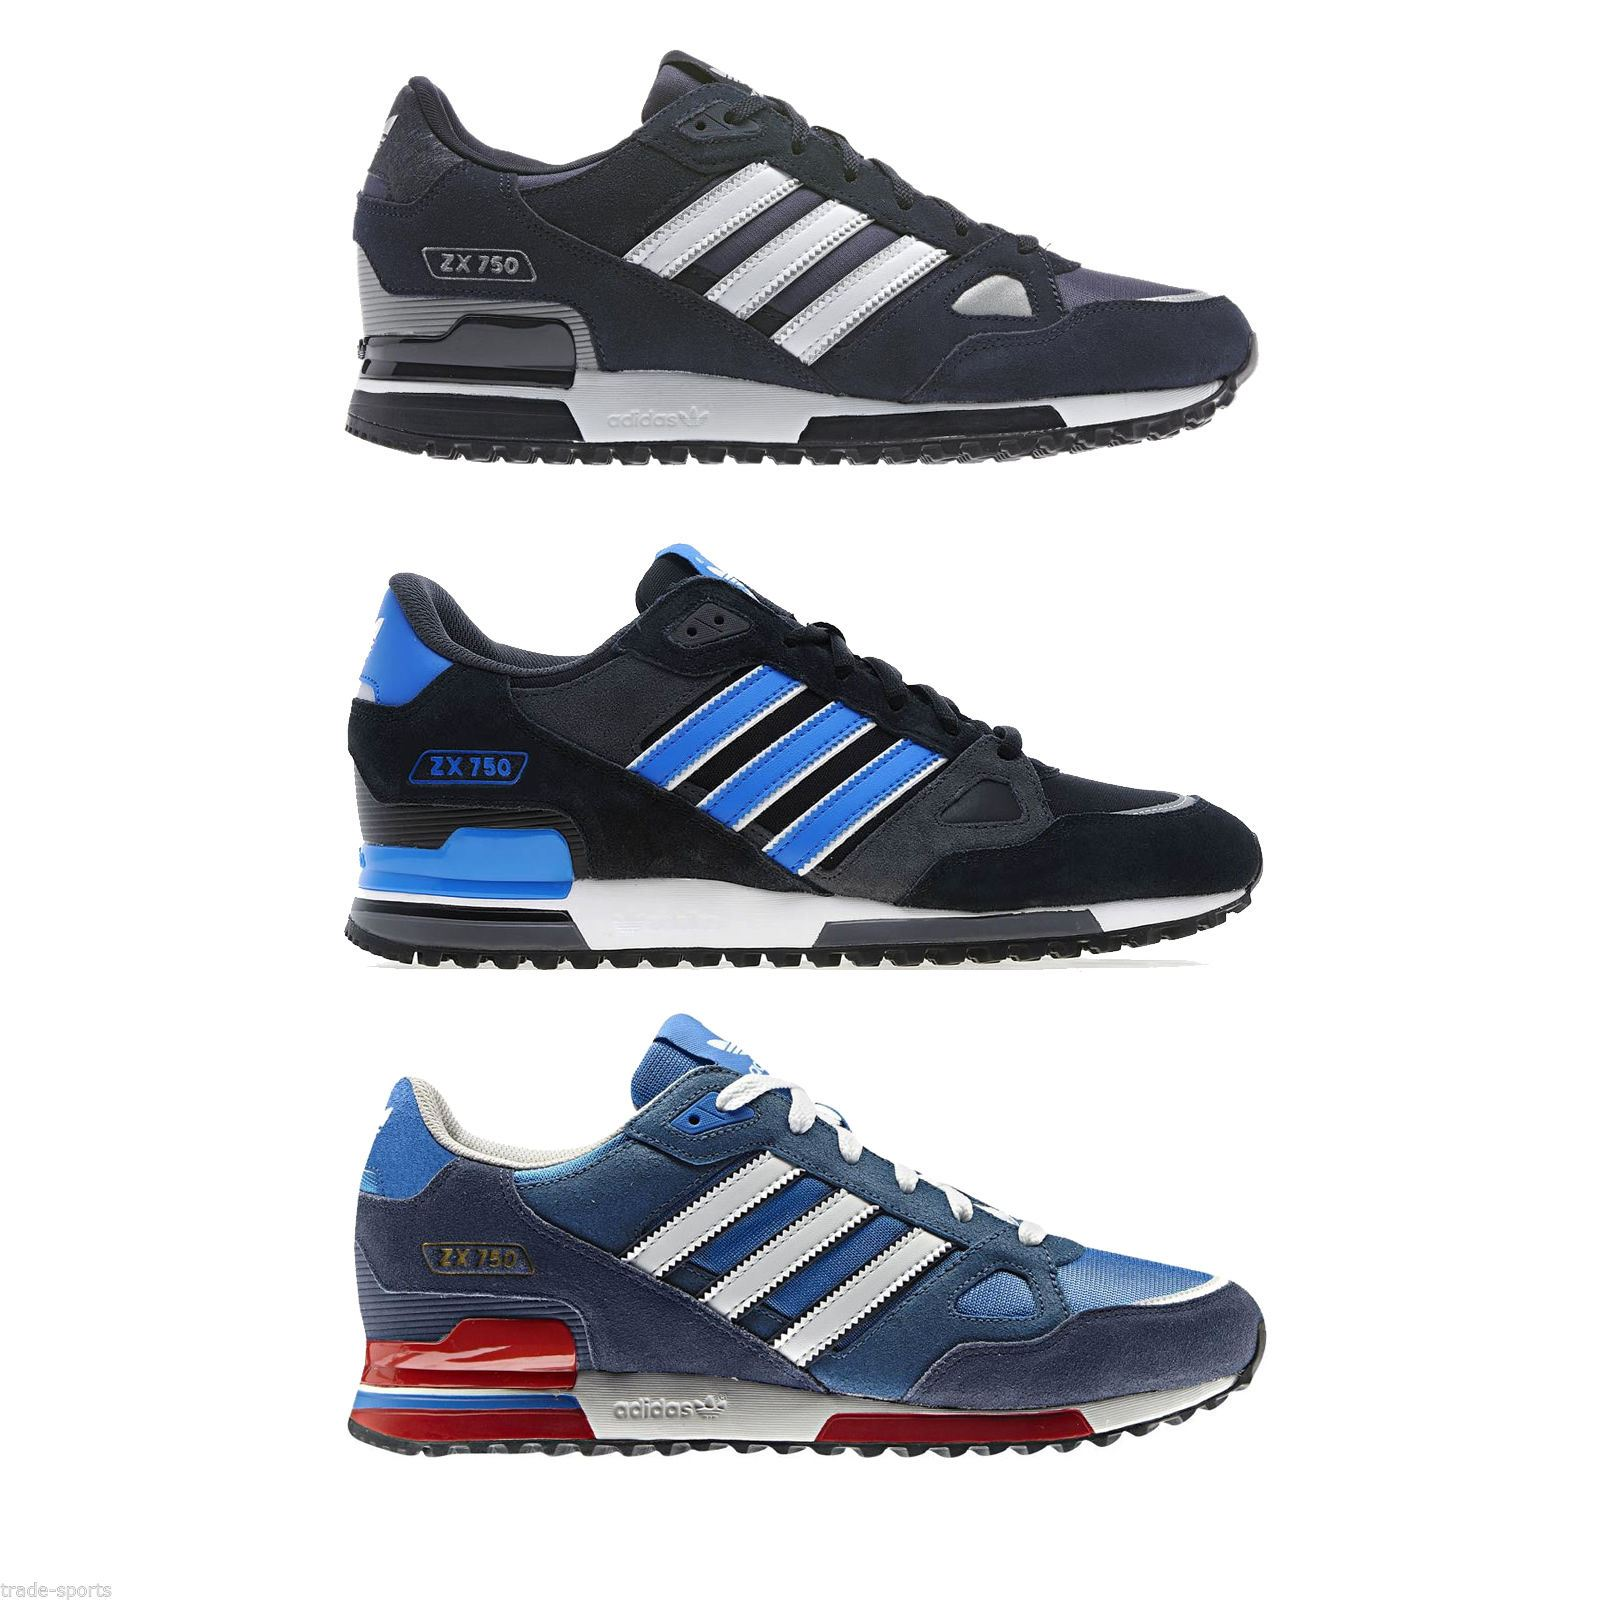 4cc377d556a Details about ADIDAS ORIGINALS ZX 750 MENS RUNNING TRAINERS BLUE BLACK NAVY SNEAKERS  SHOES NEW